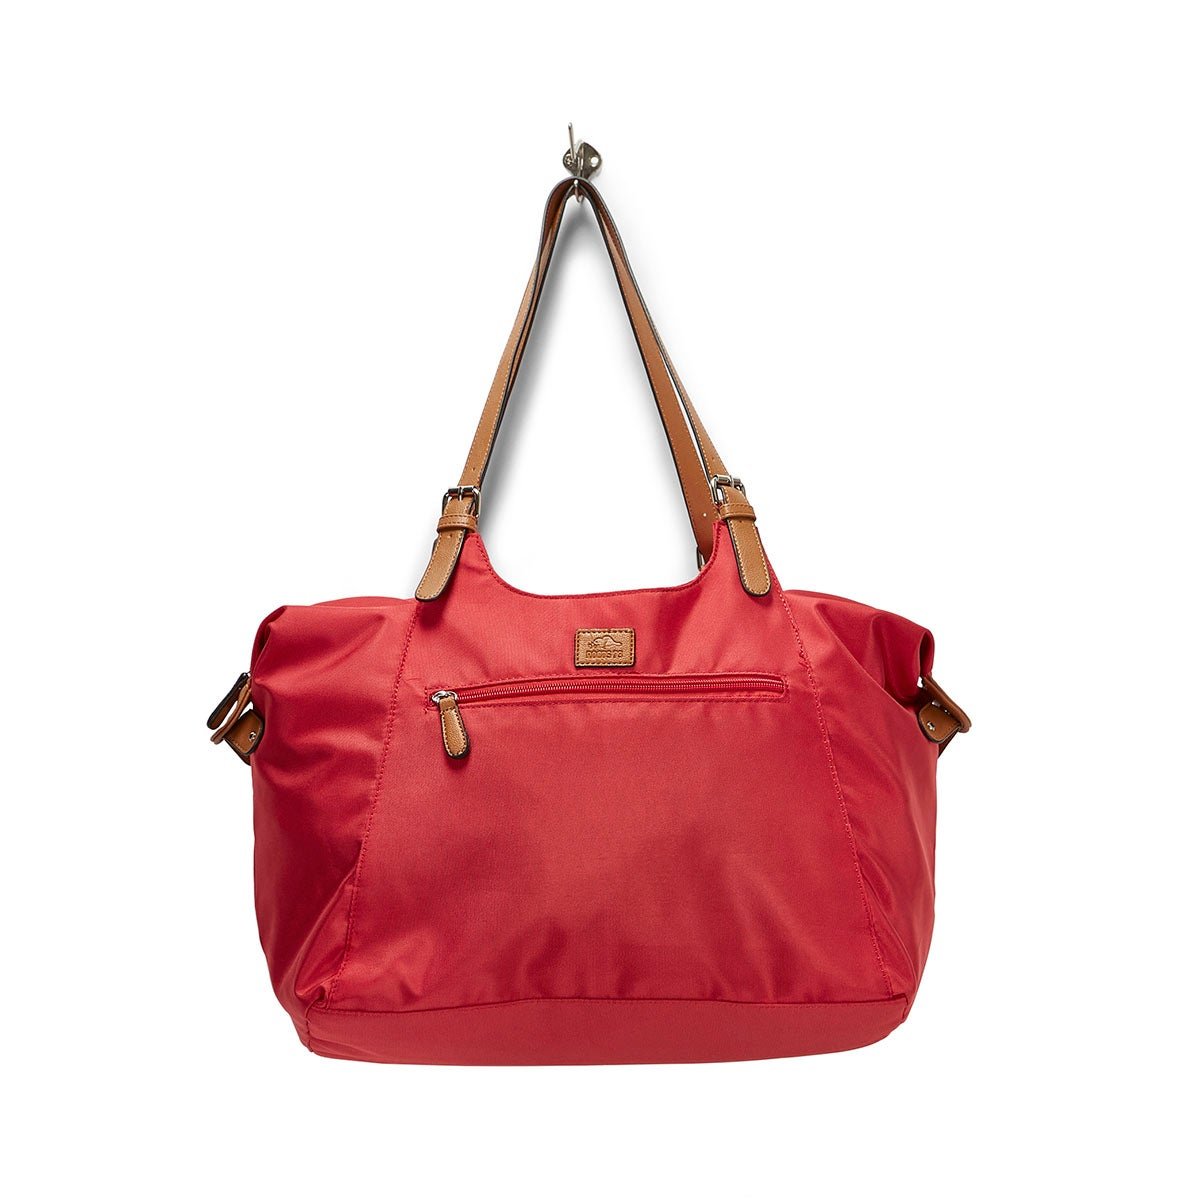 Lds Roots73 red nylon large tote bag